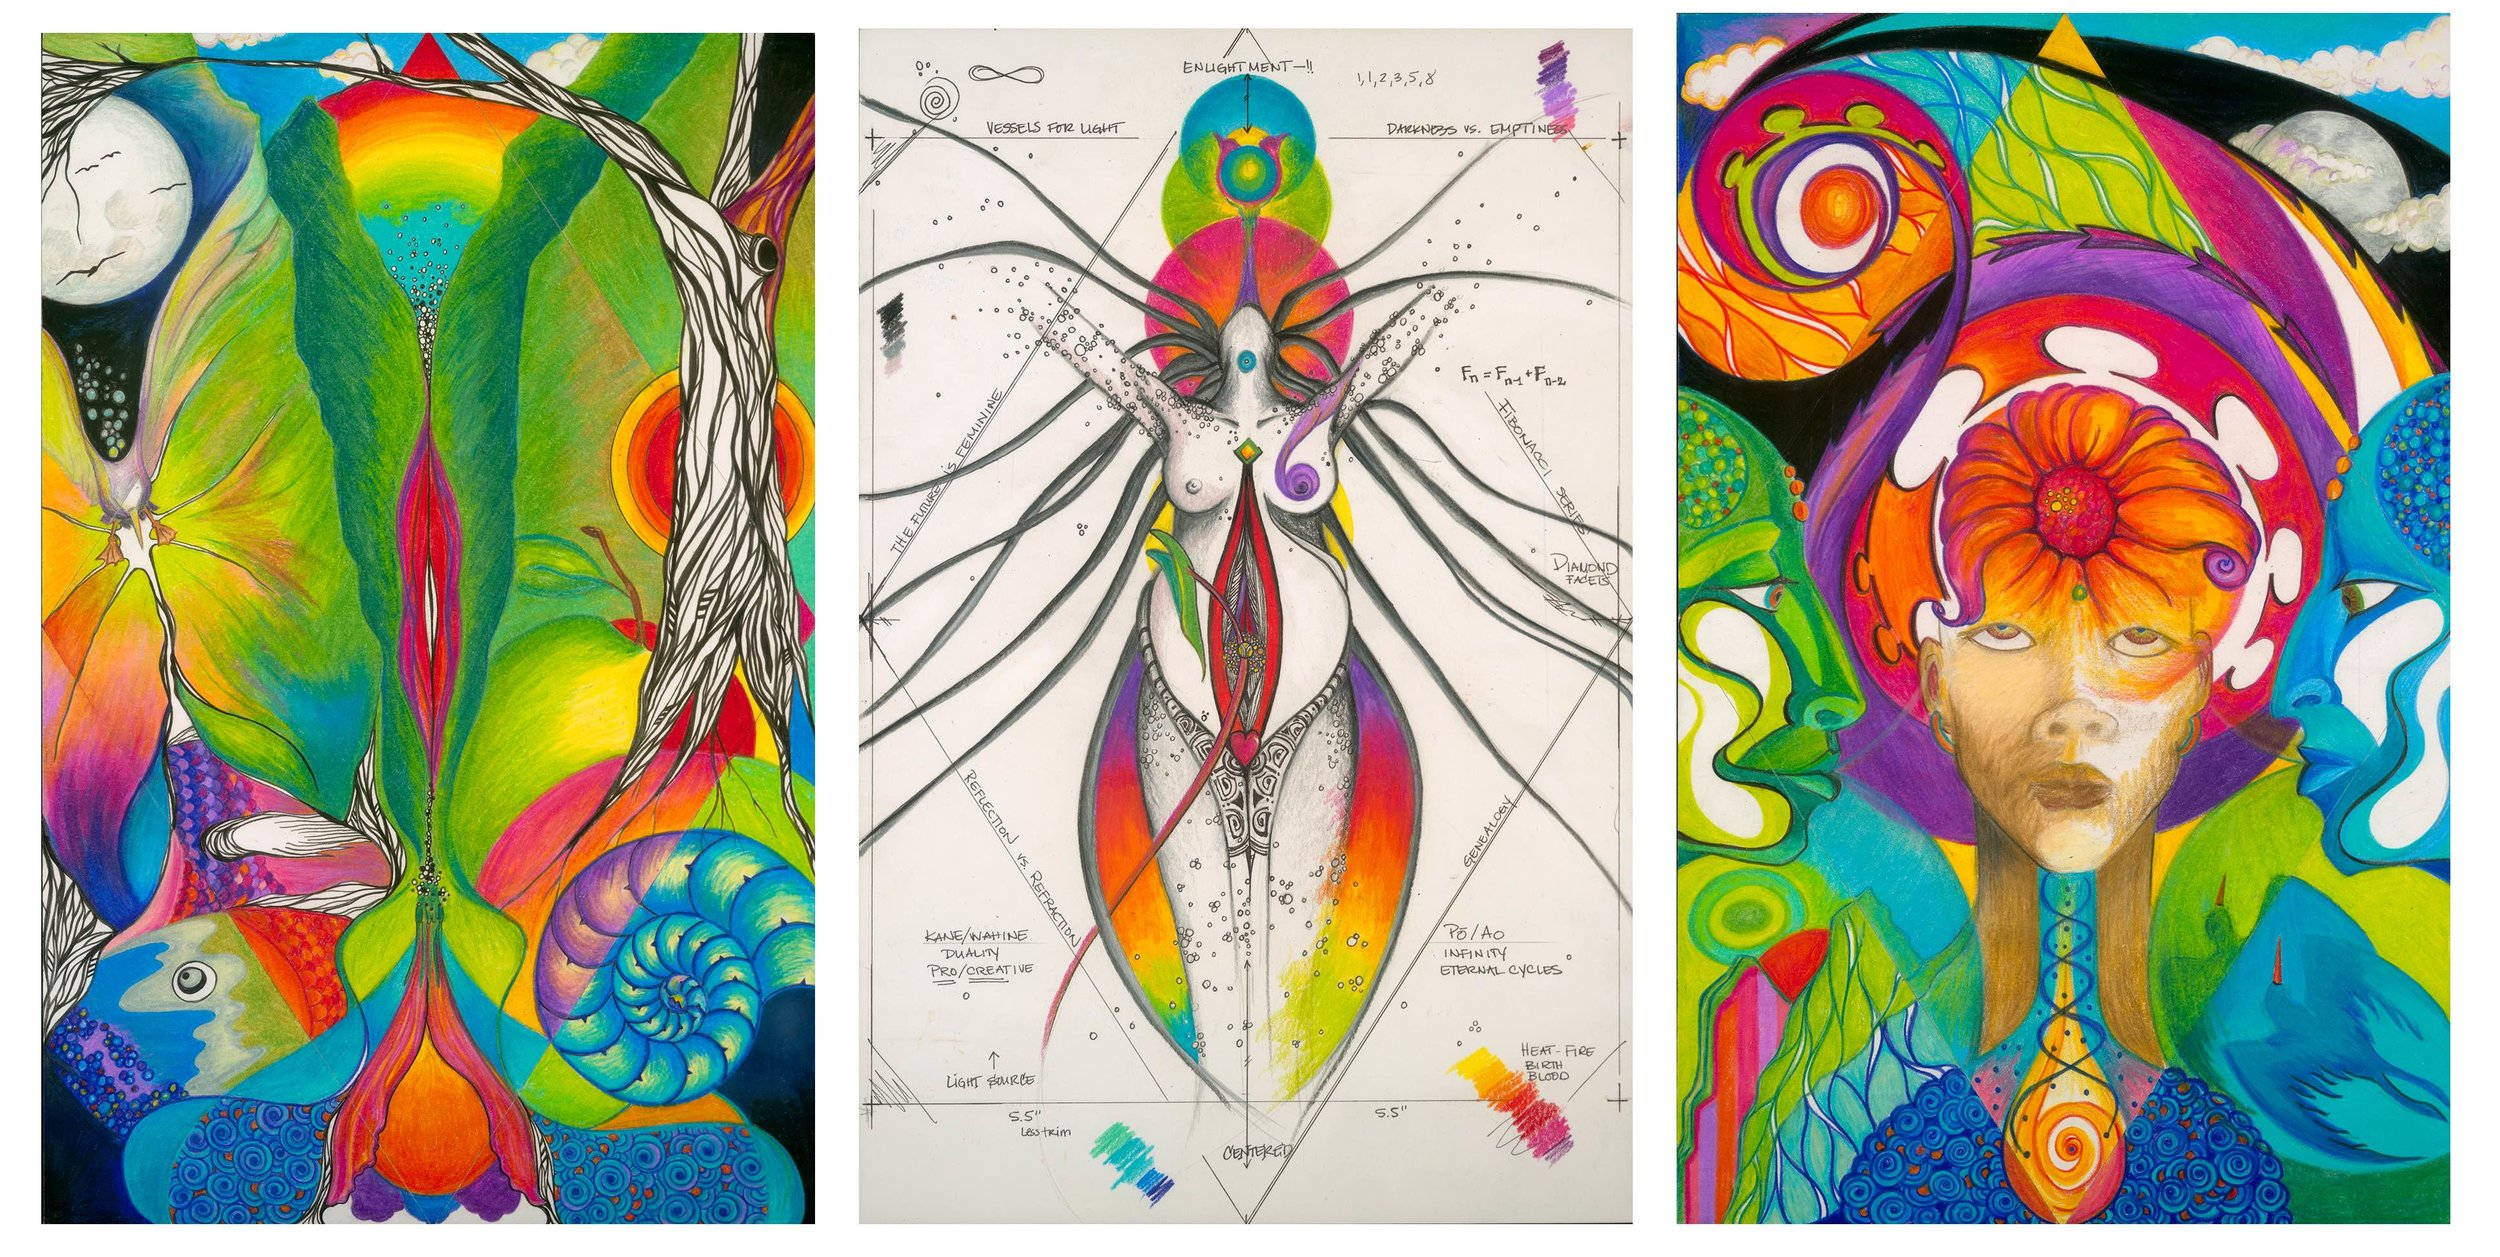 """From left to right: ʻĀina, Kanaka and Akua. Individually the images represent the three principles of the HUA Institute, which is a component of the """"imagined futures"""" concept developed for CTRL+ALT. ©2016 Hānau Creative & Naiʻa Lewis. All rights reserved."""